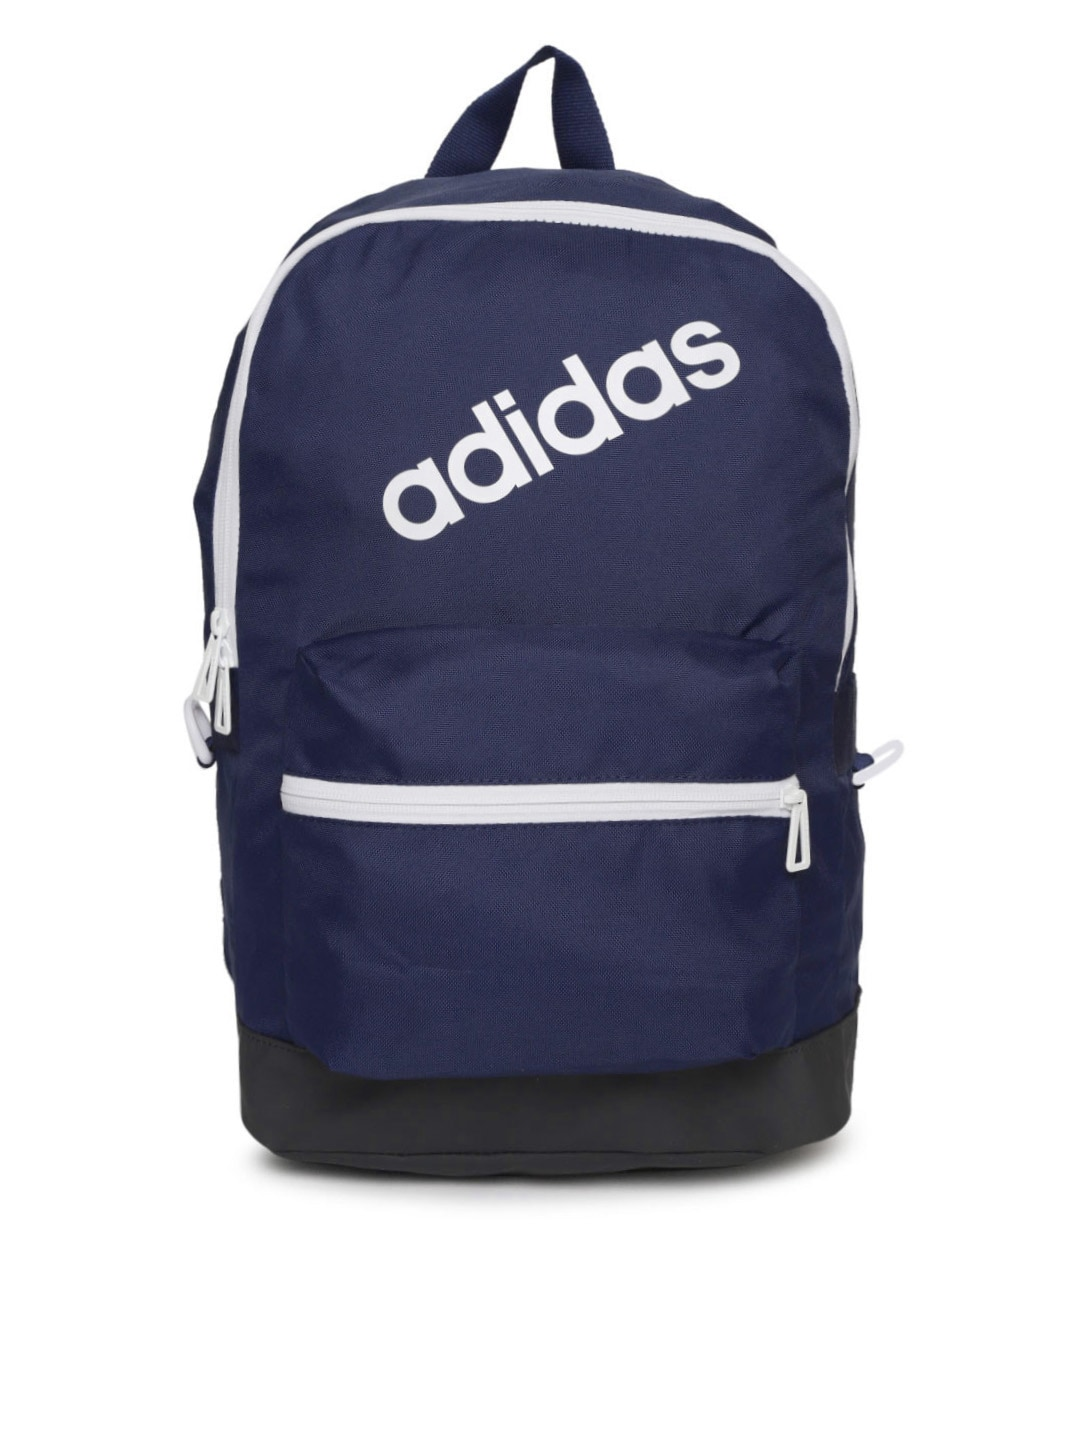 36e4af264cf5 Adidas S.oliver White - Buy Adidas S.oliver White online in India